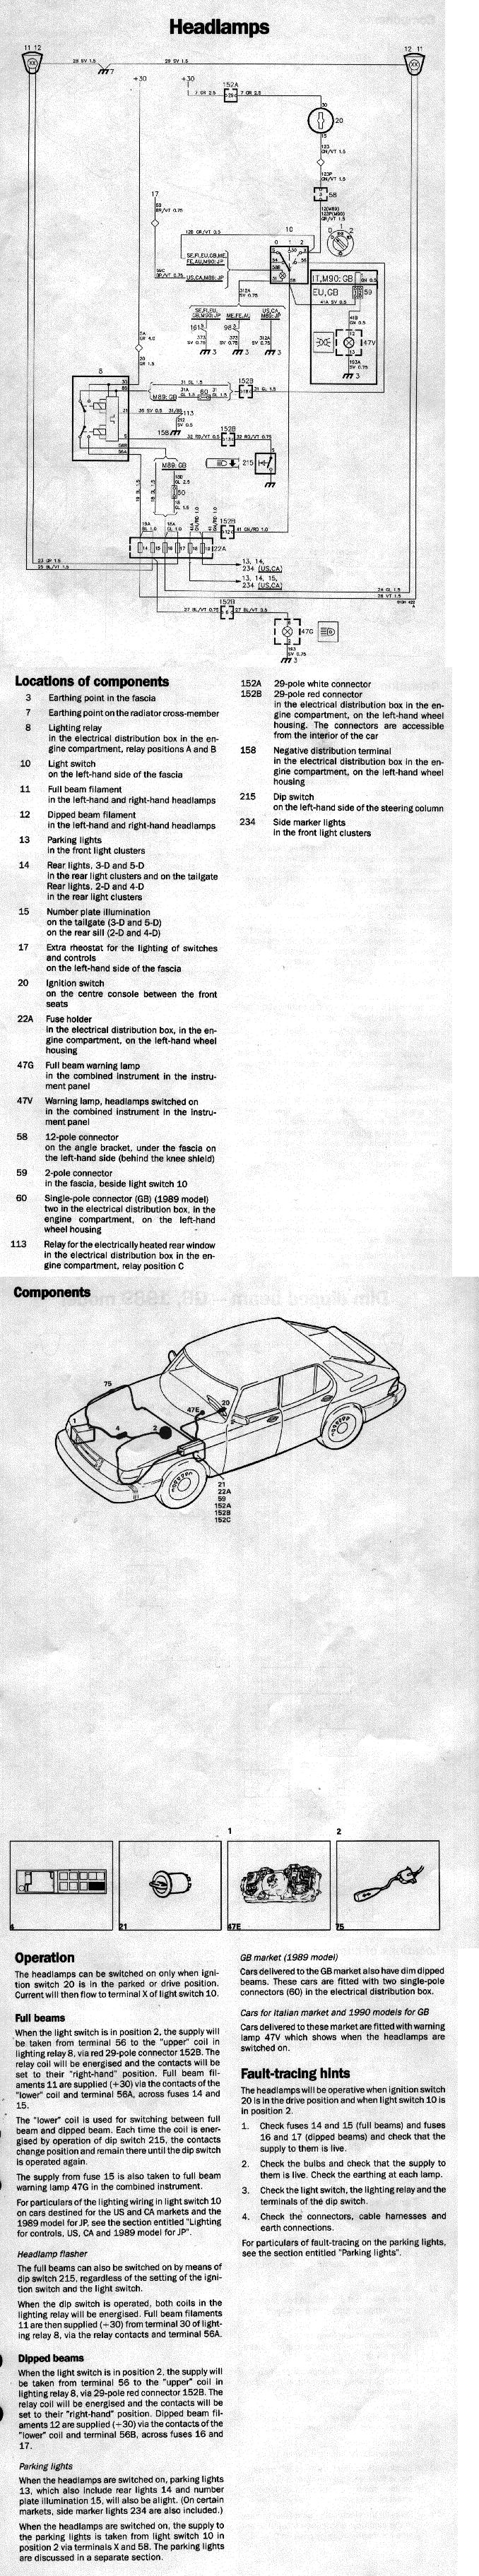 Electrical 900 89 90 Apc Tachometer Wiring Diagram 94 System 98 Lighting Systems Headlamps